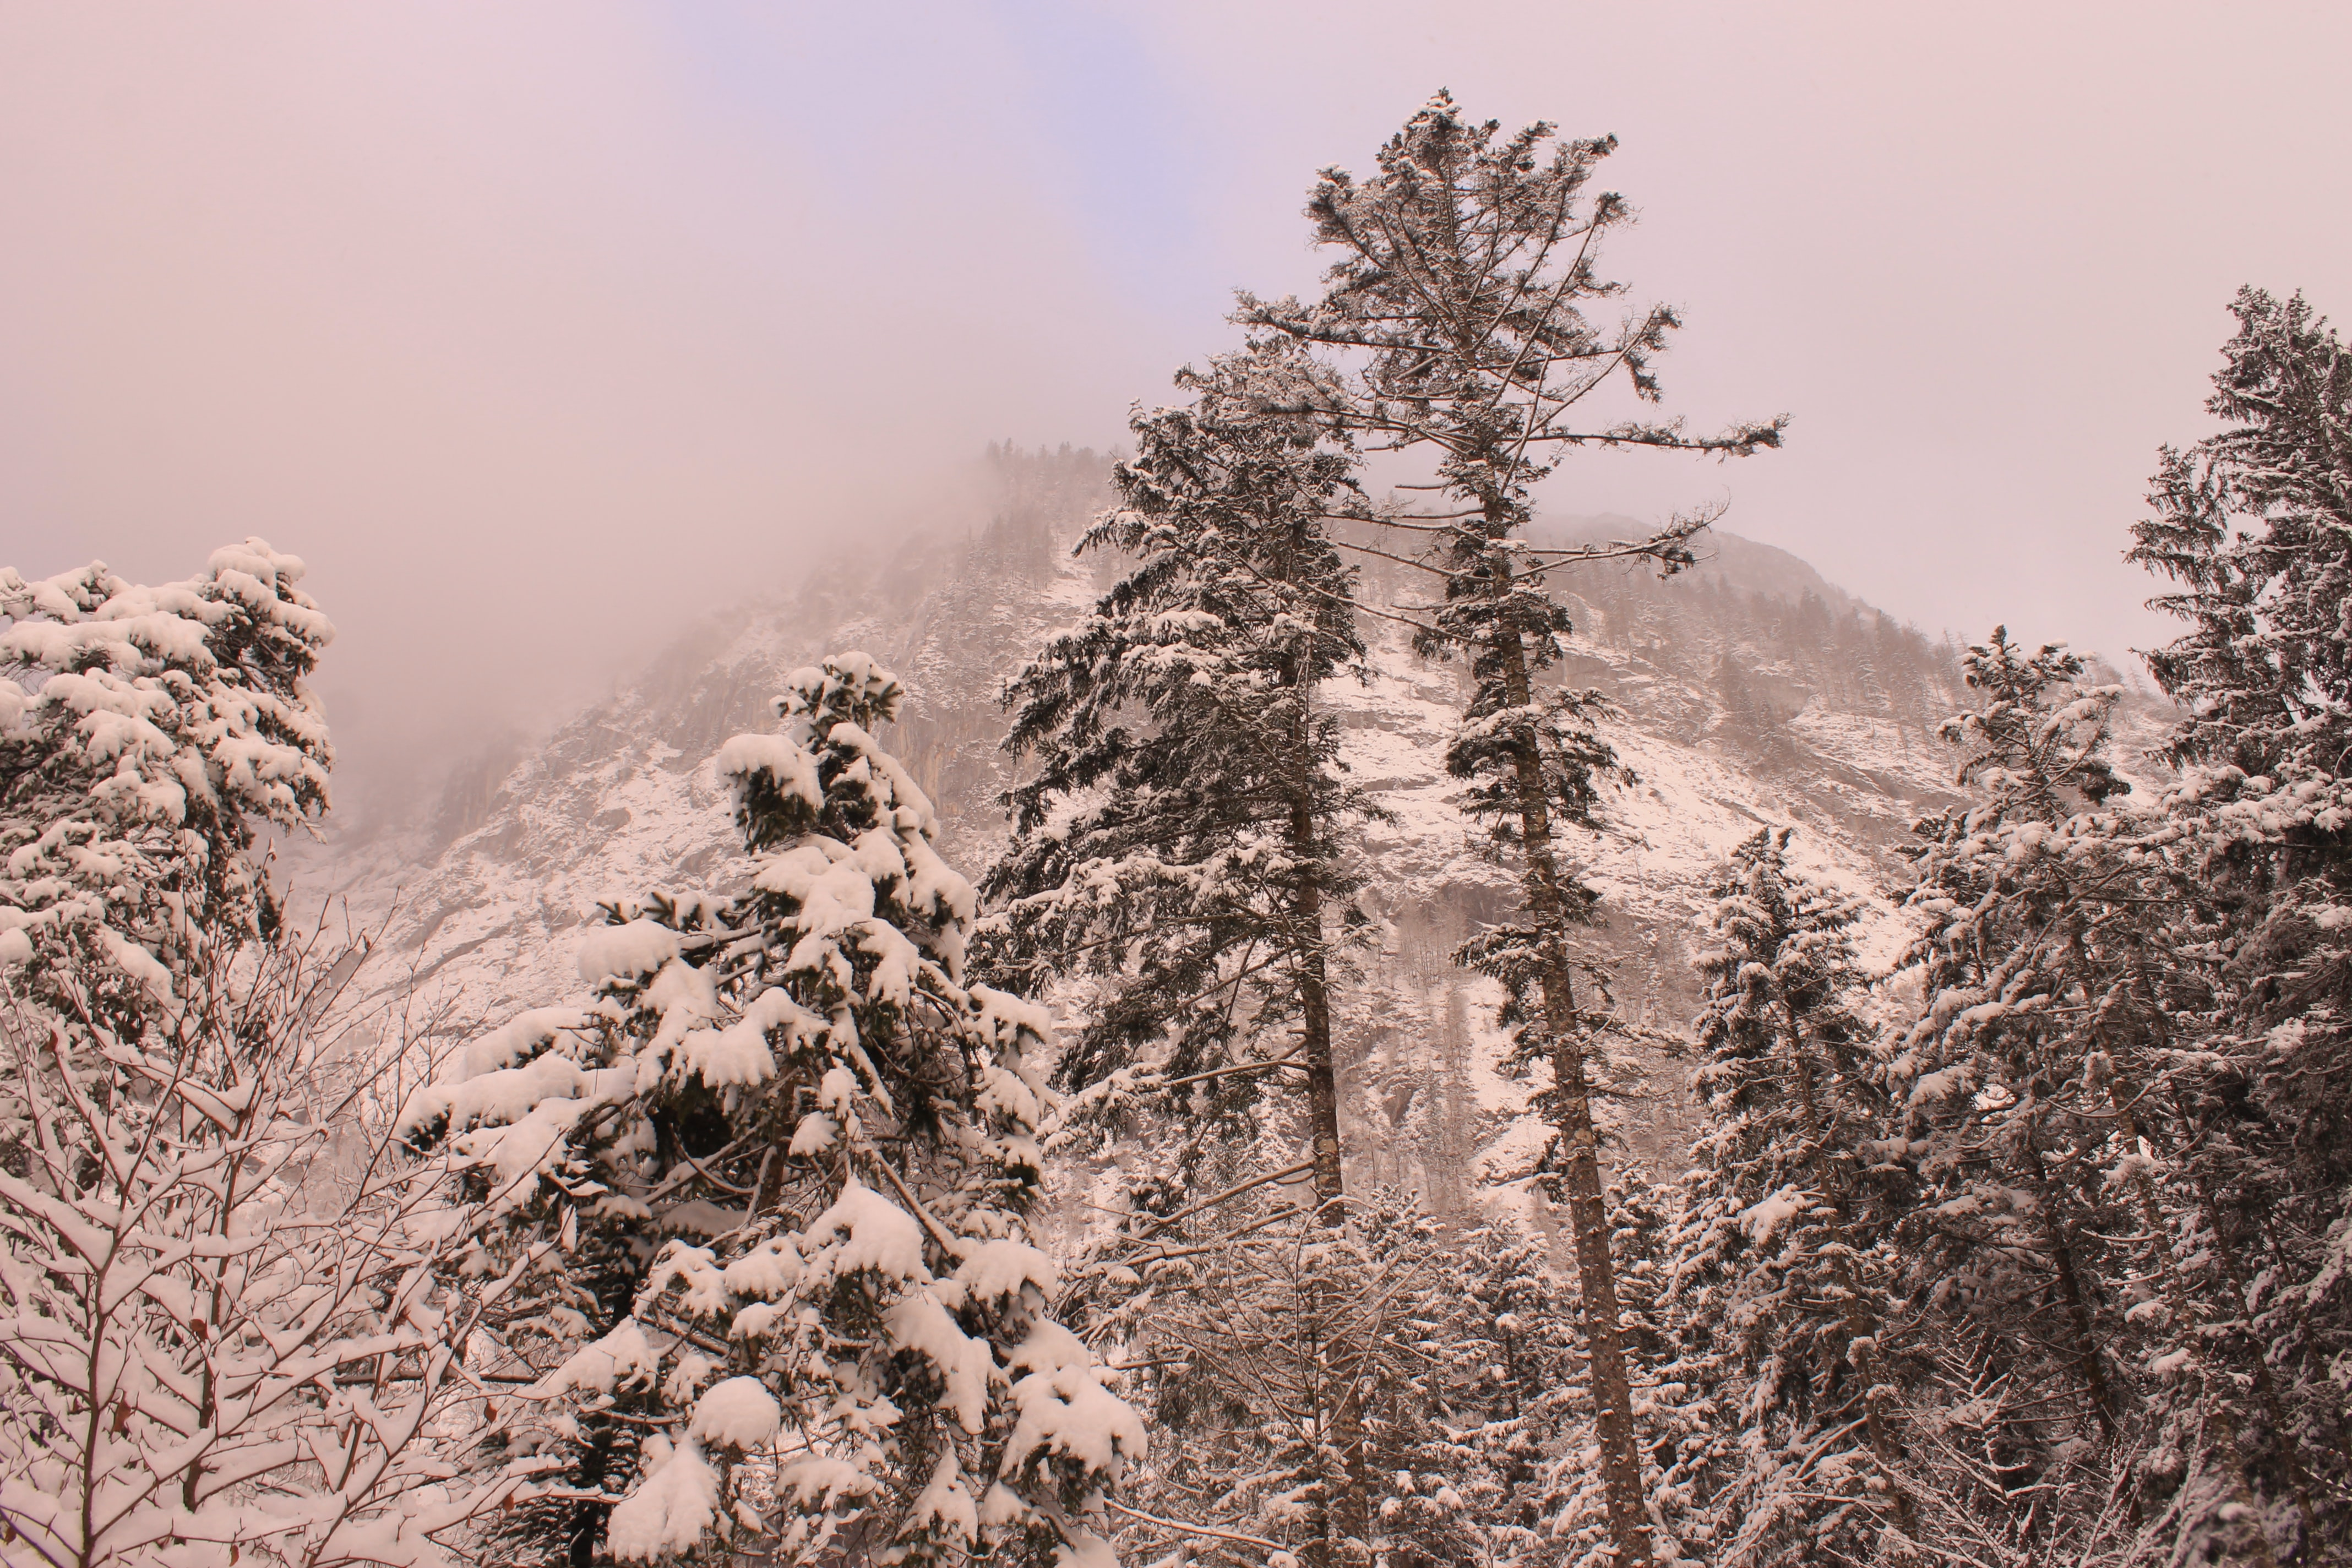 A low-angle shot of tall trees below a towering mist-shrouded mountain peak